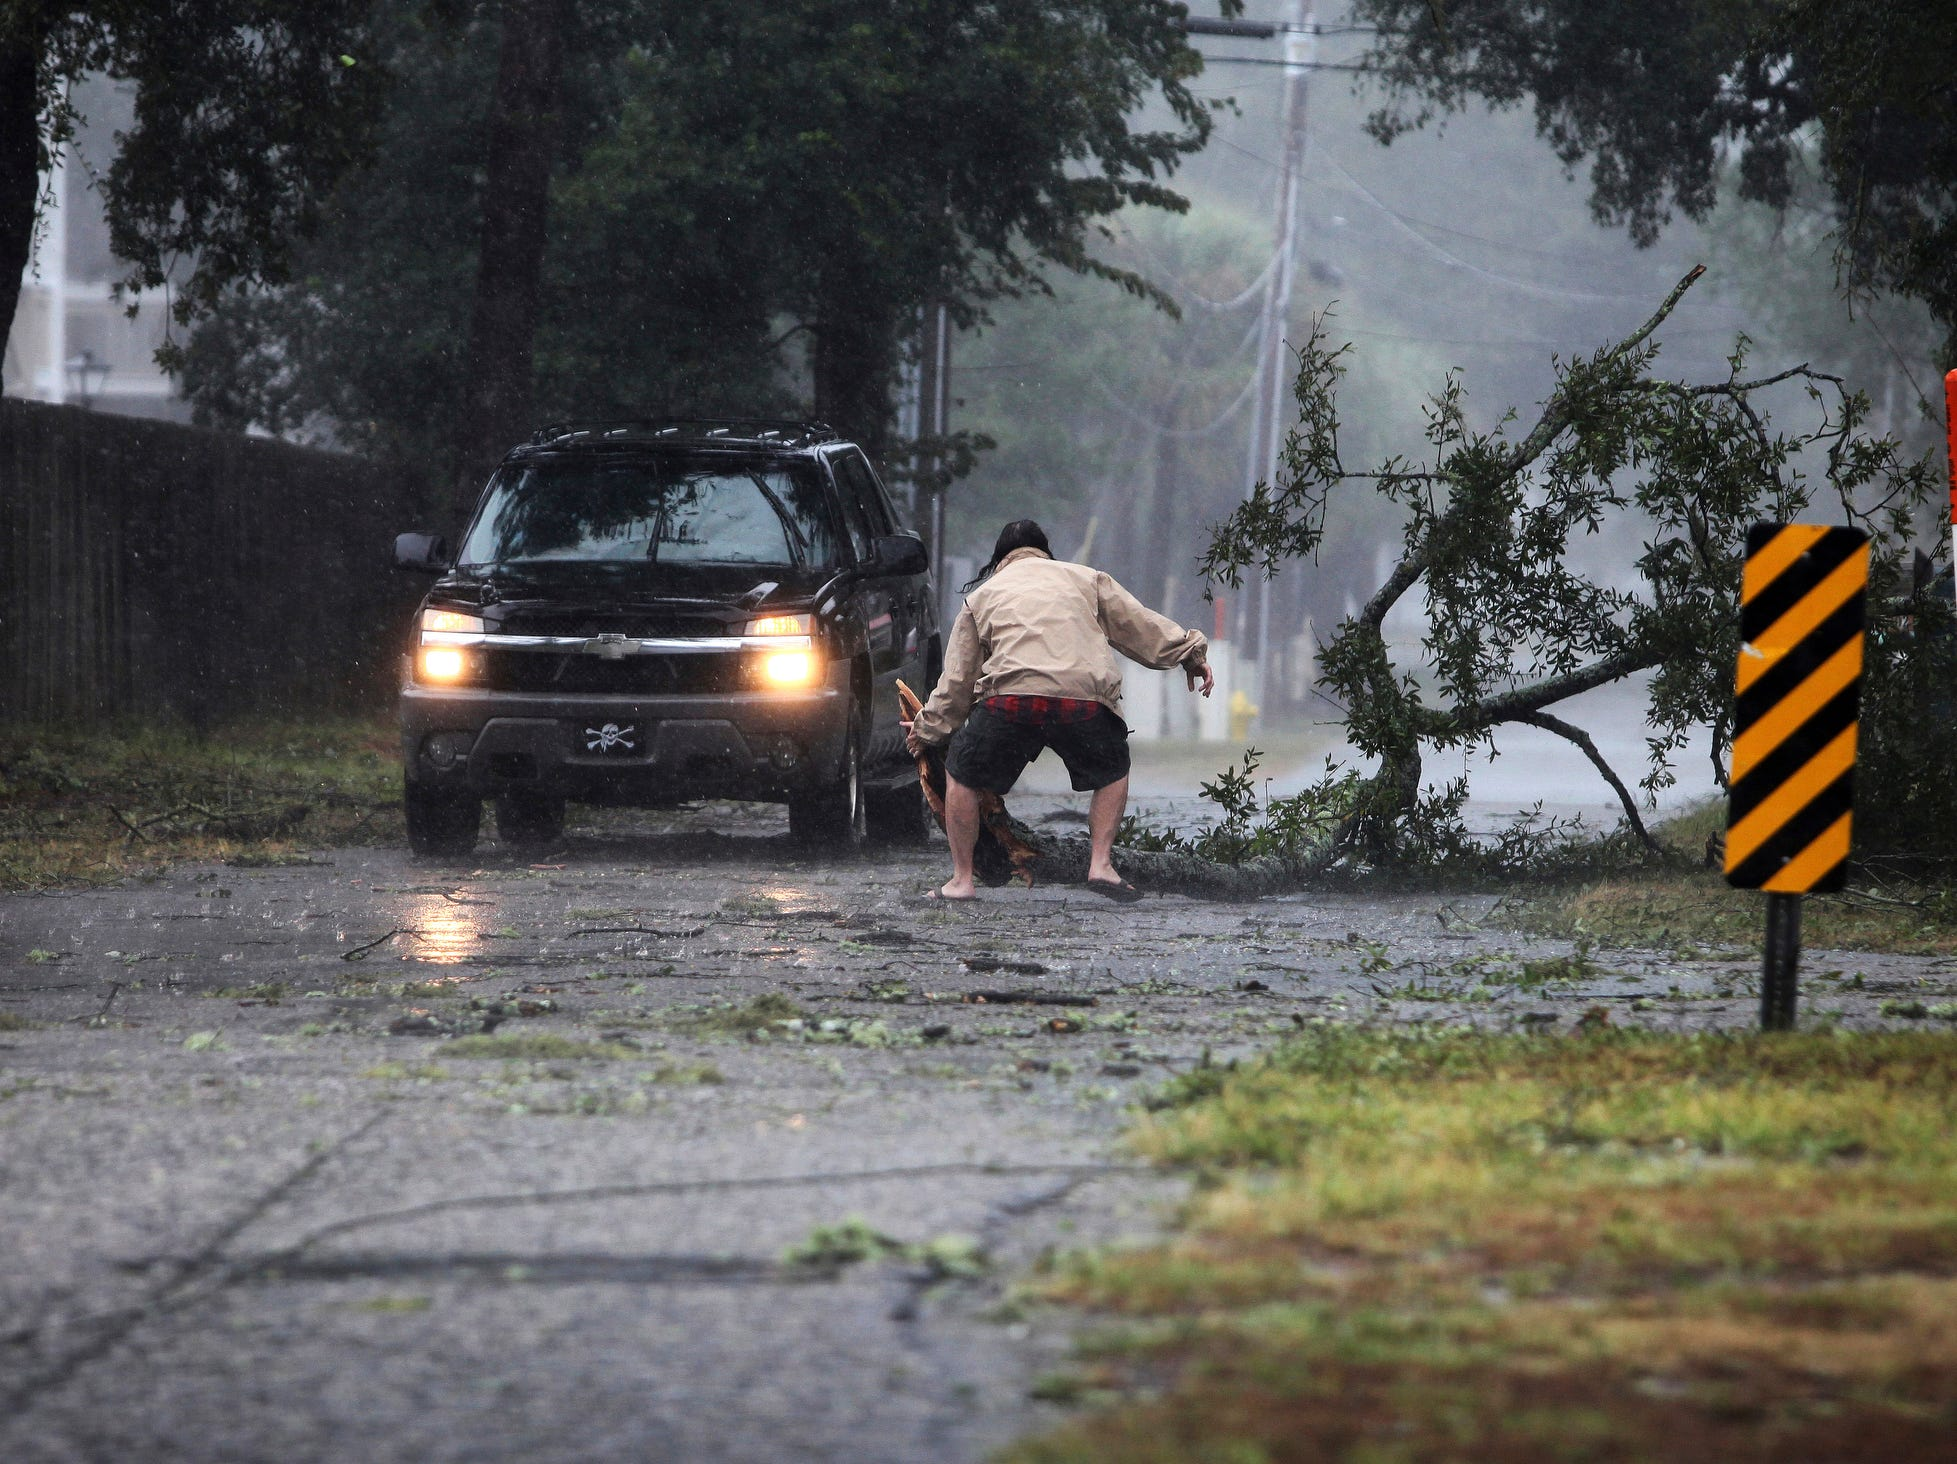 A man moves a large tree limb that downed power lines as the hurricane-turned-tropical storm Florence hit the Cherry Grove community in North Myrtle Beach, S.C., Friday.